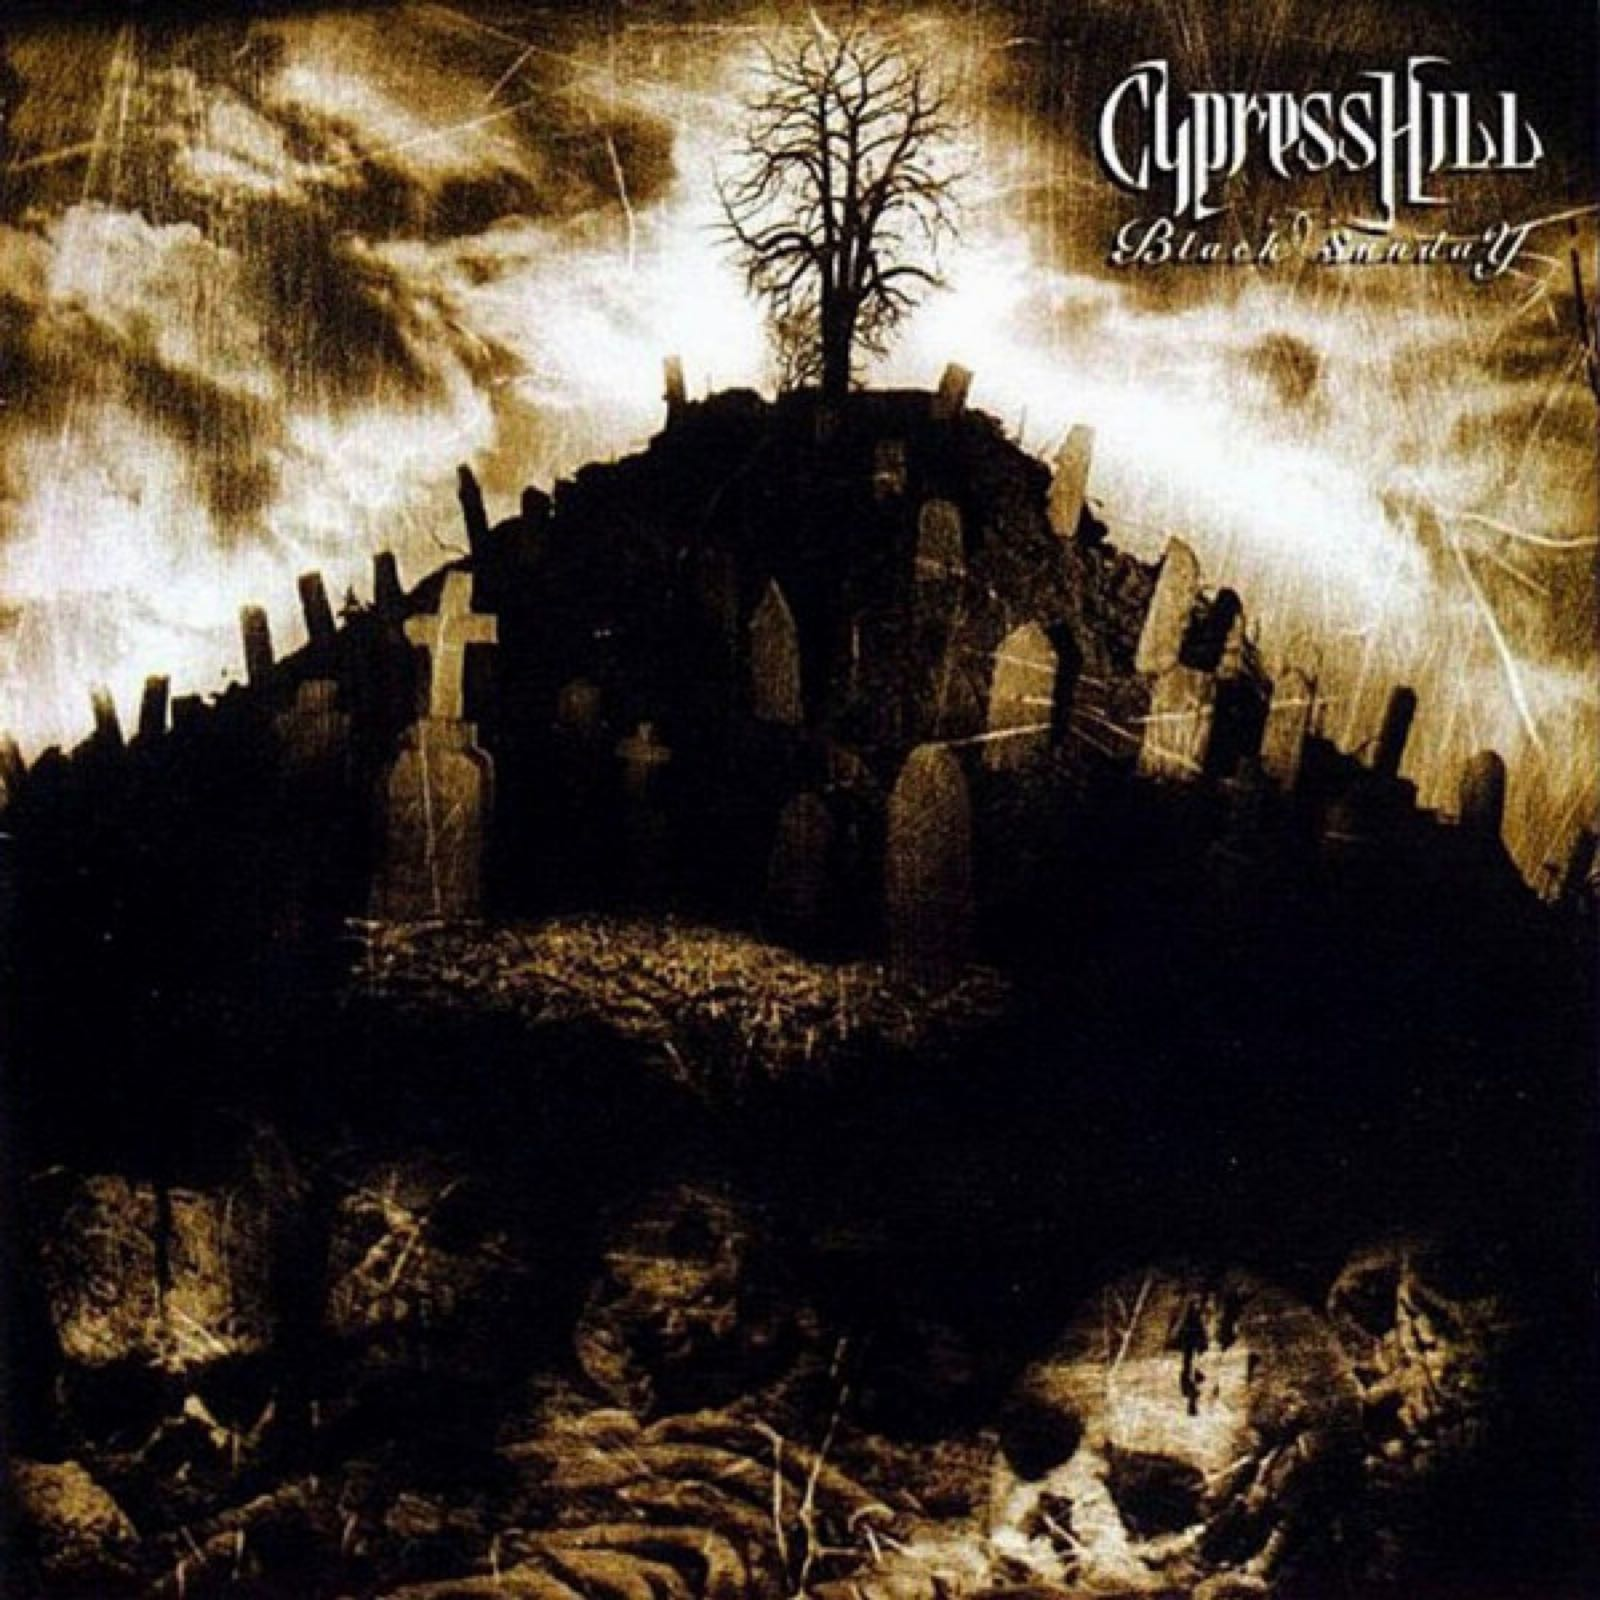 Cypress Hill - Black Sunday [2xLP]